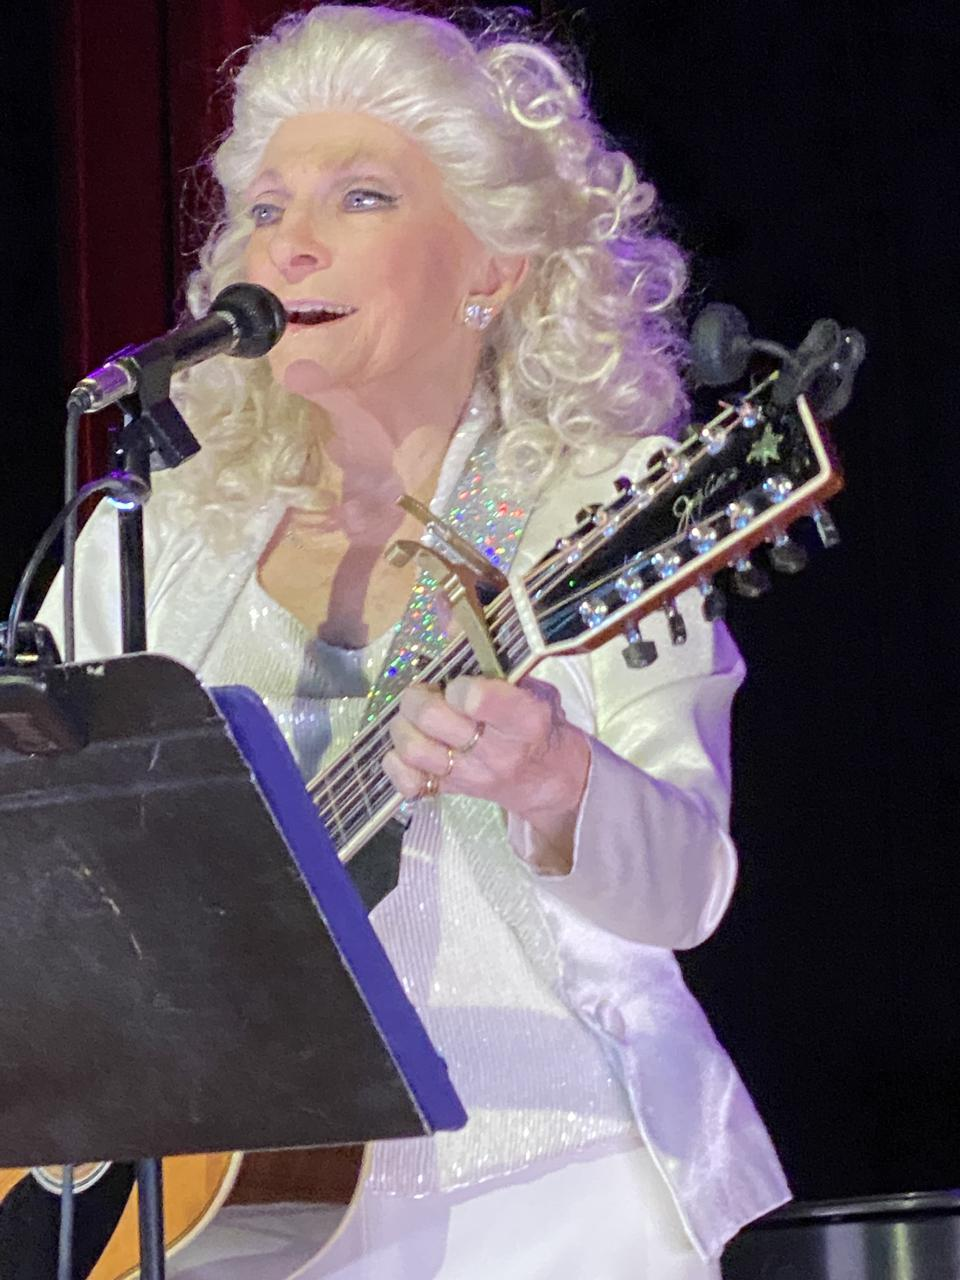 Judy Collins is performing at The Town Hall in a live streamed concert